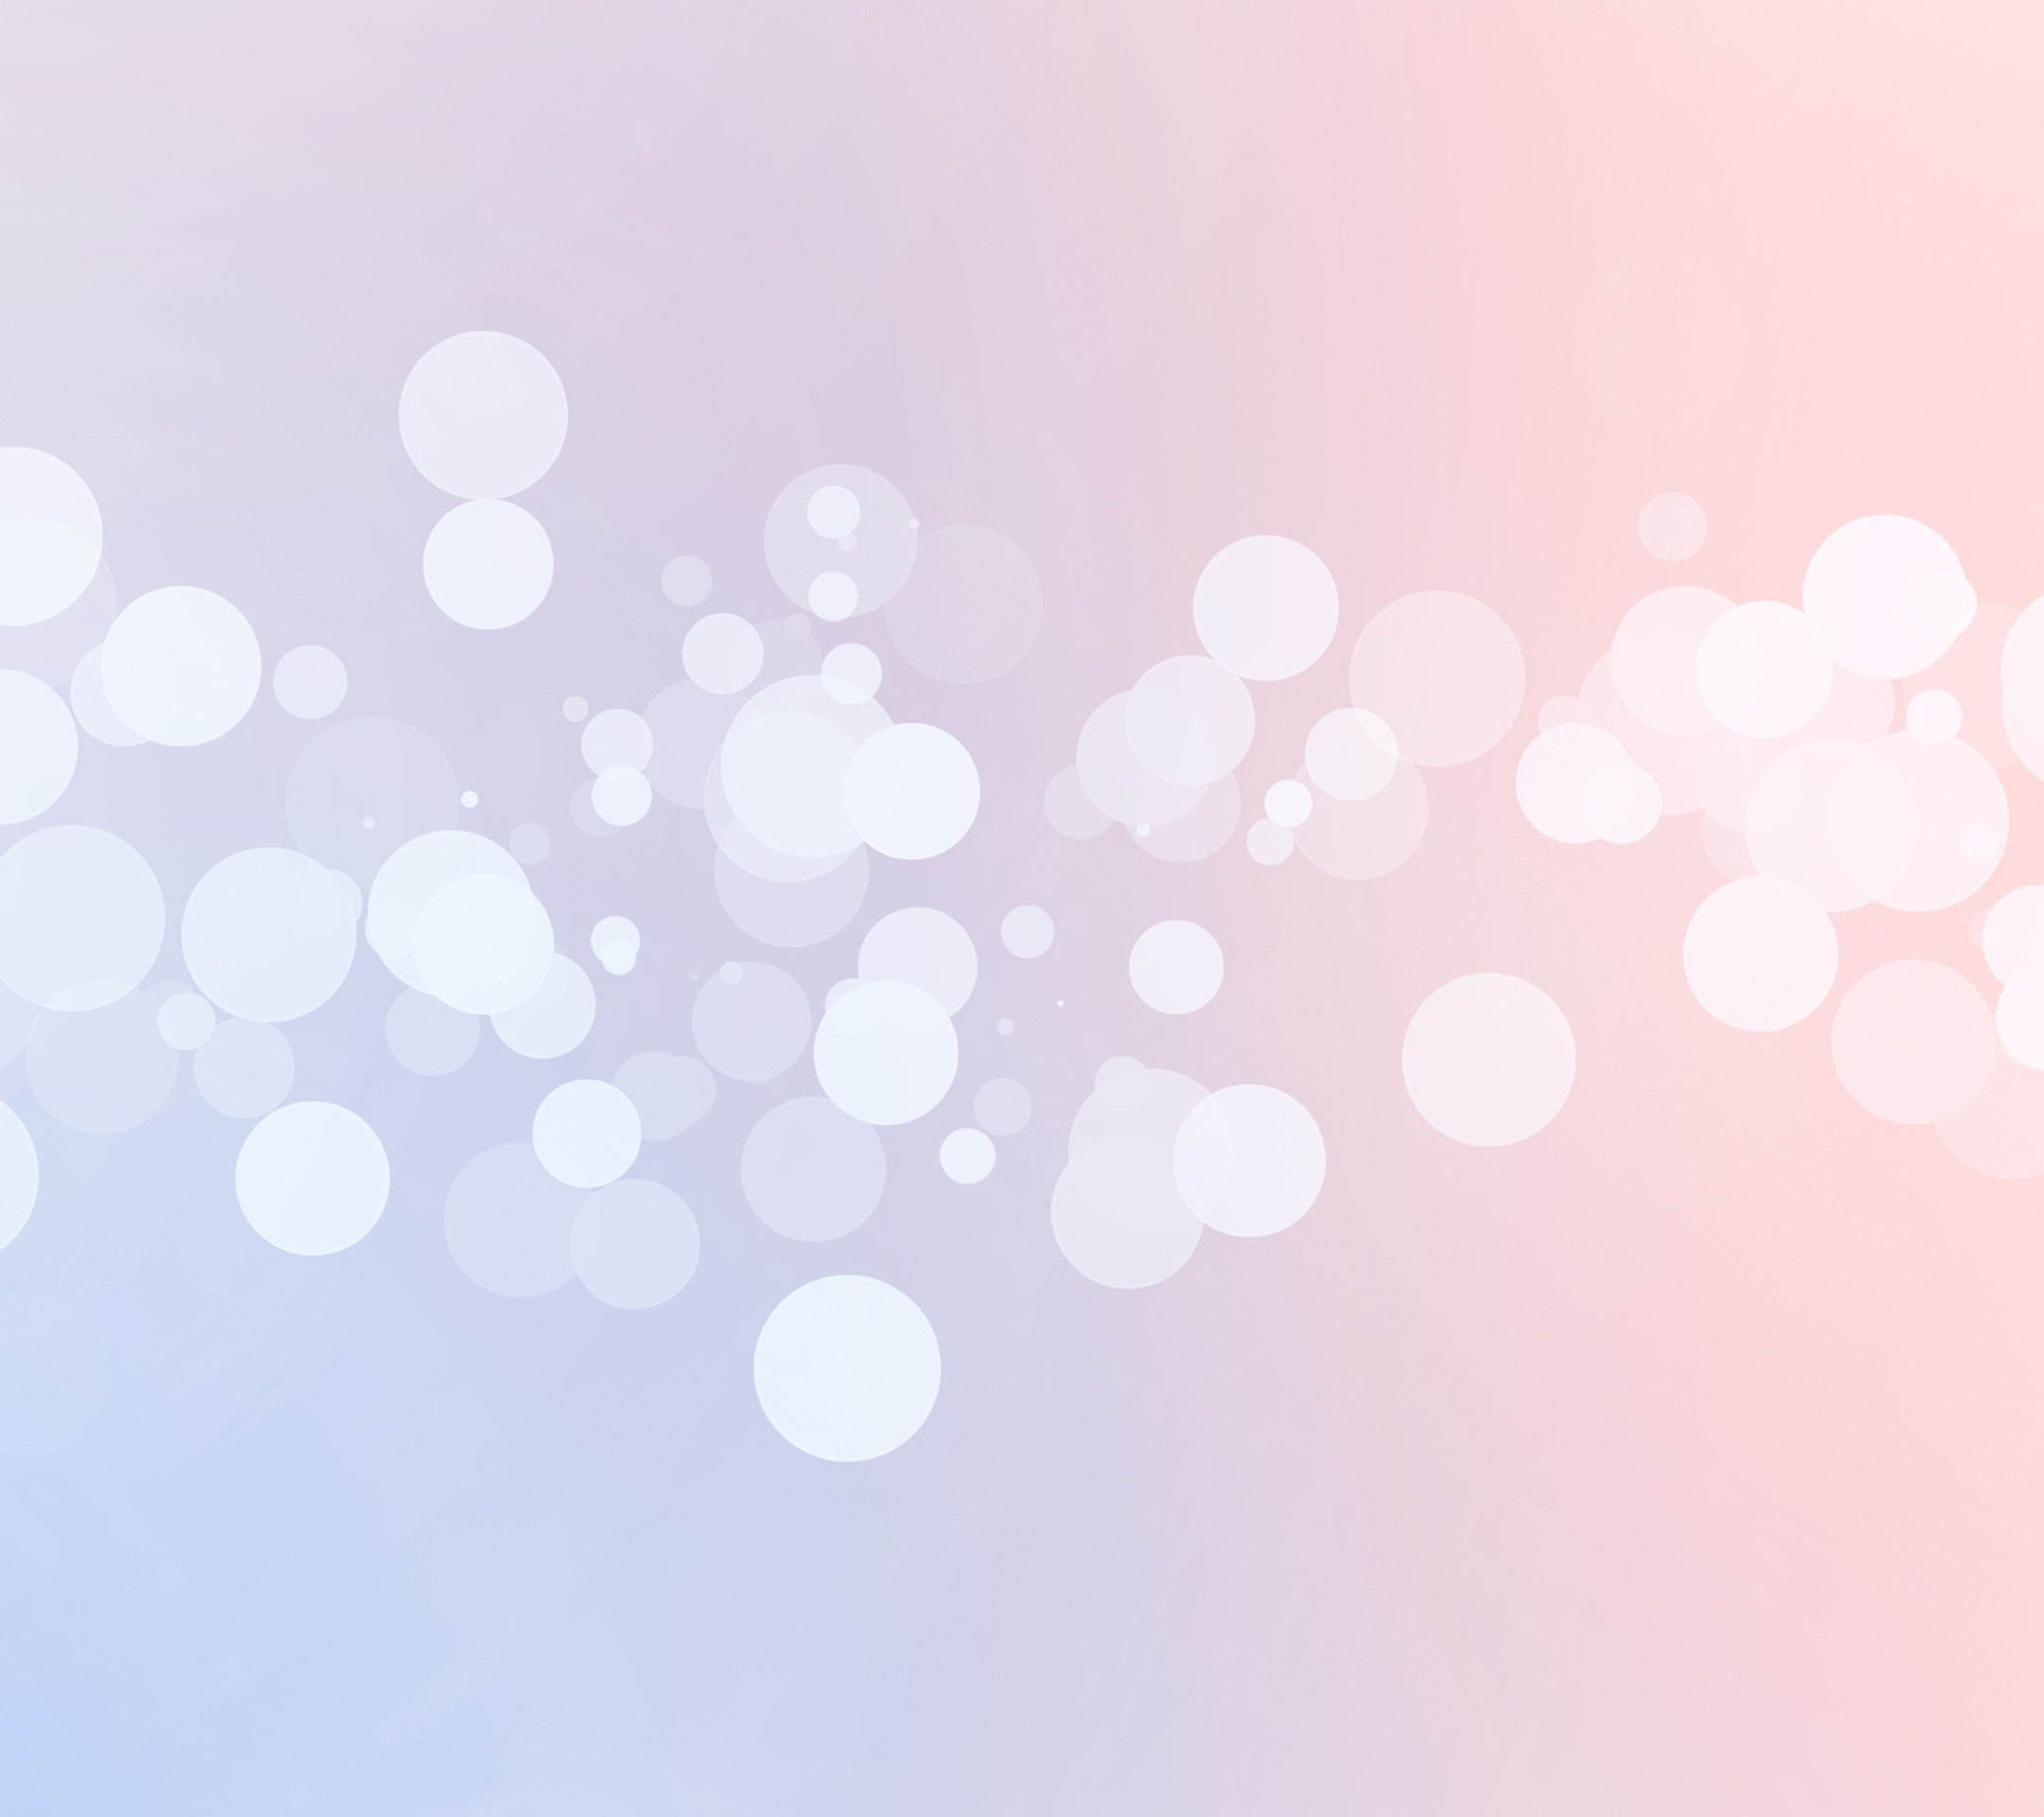 Cute Plain Backgrounds